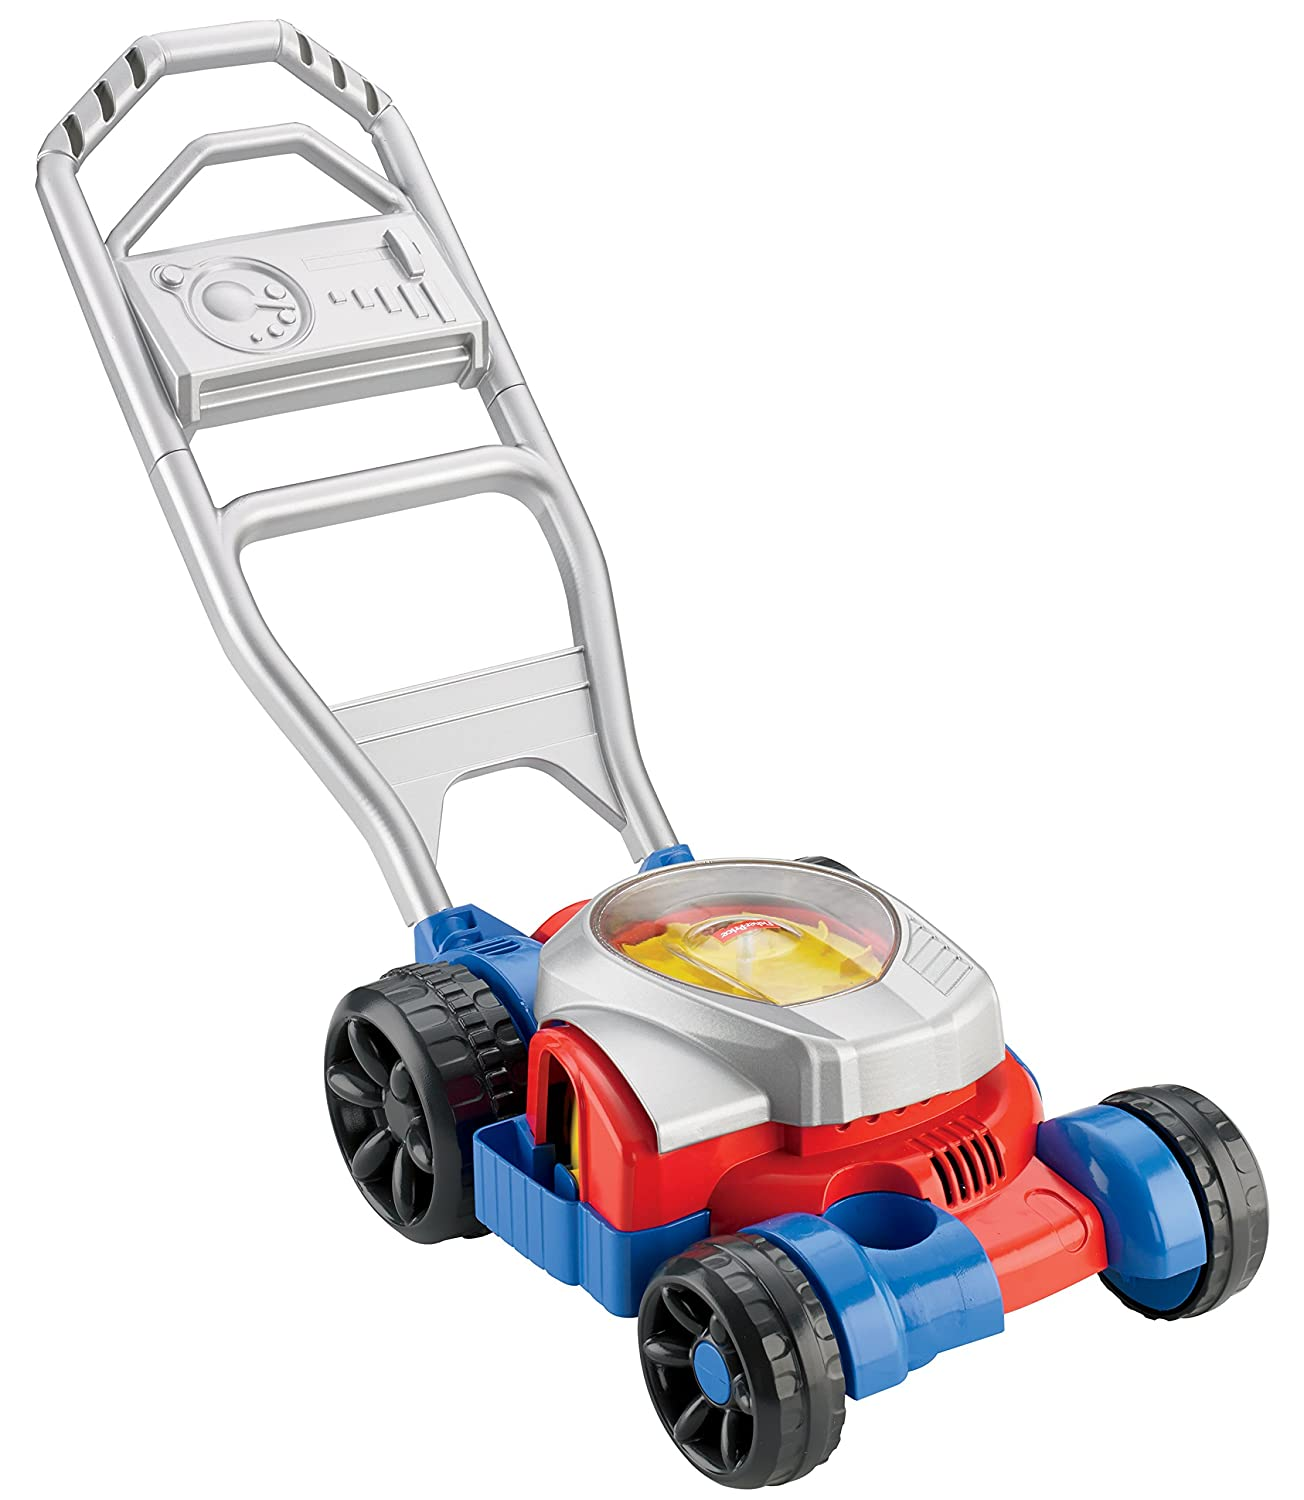 Amazon Fisher Price Bubble Mower Toys & Games